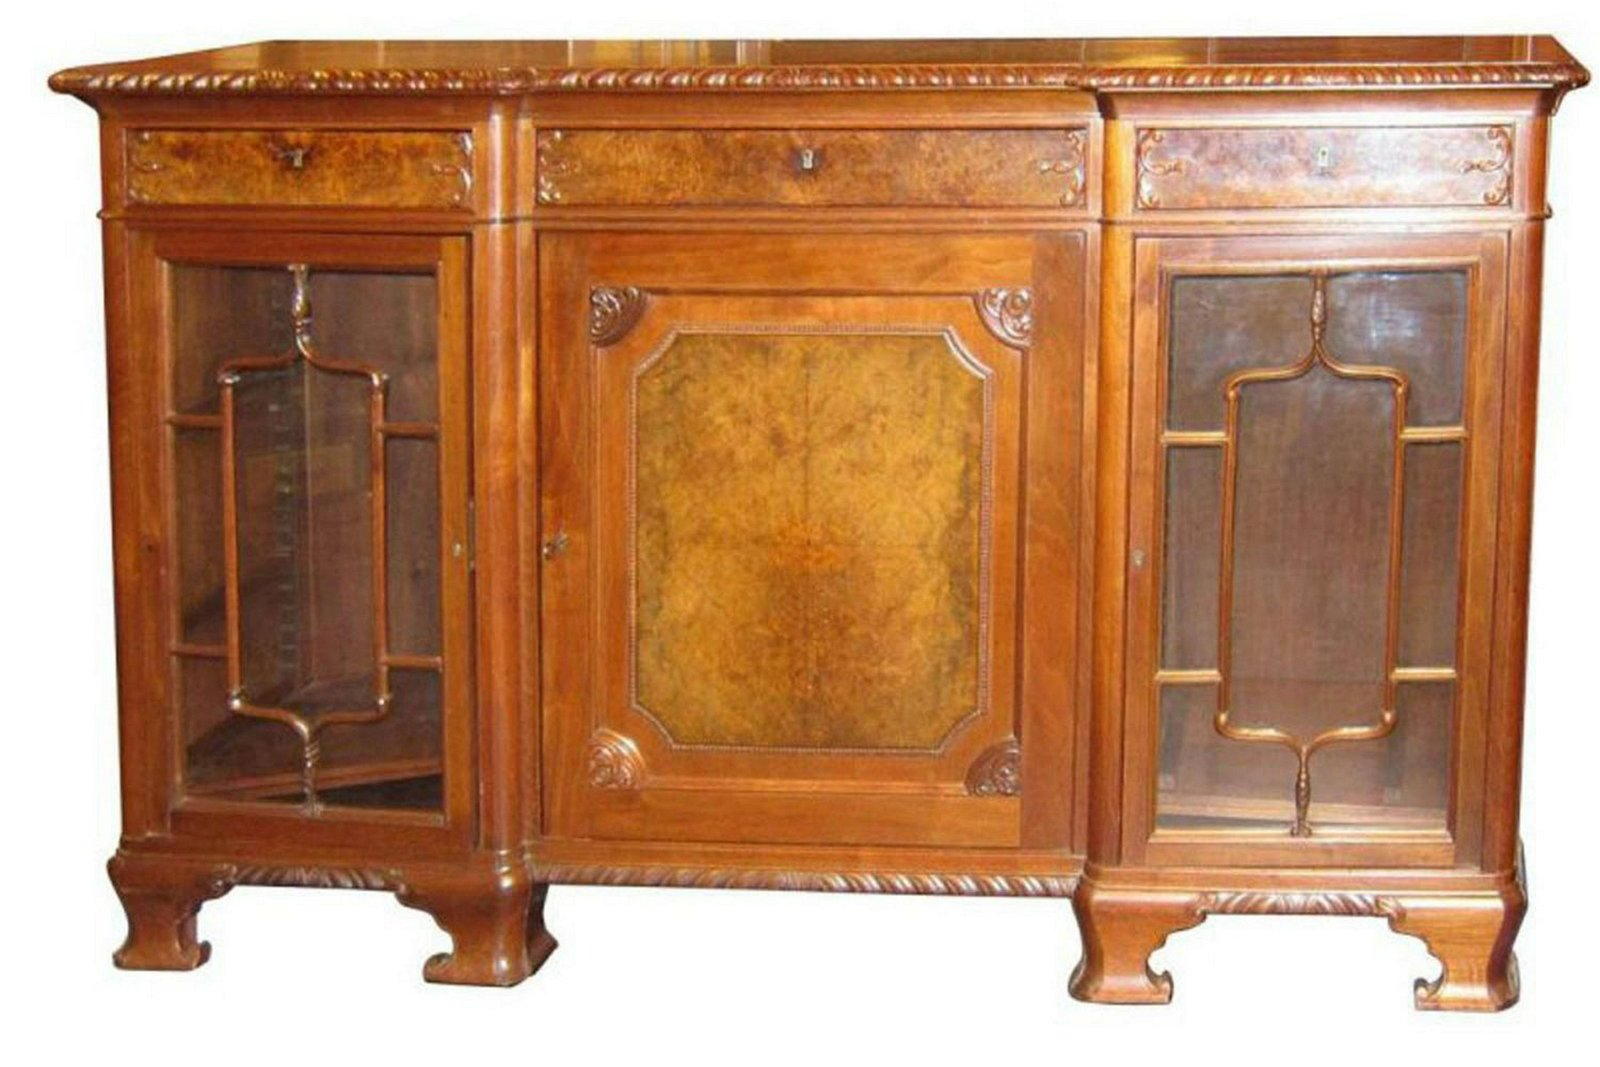 Chippendale-style sideboard